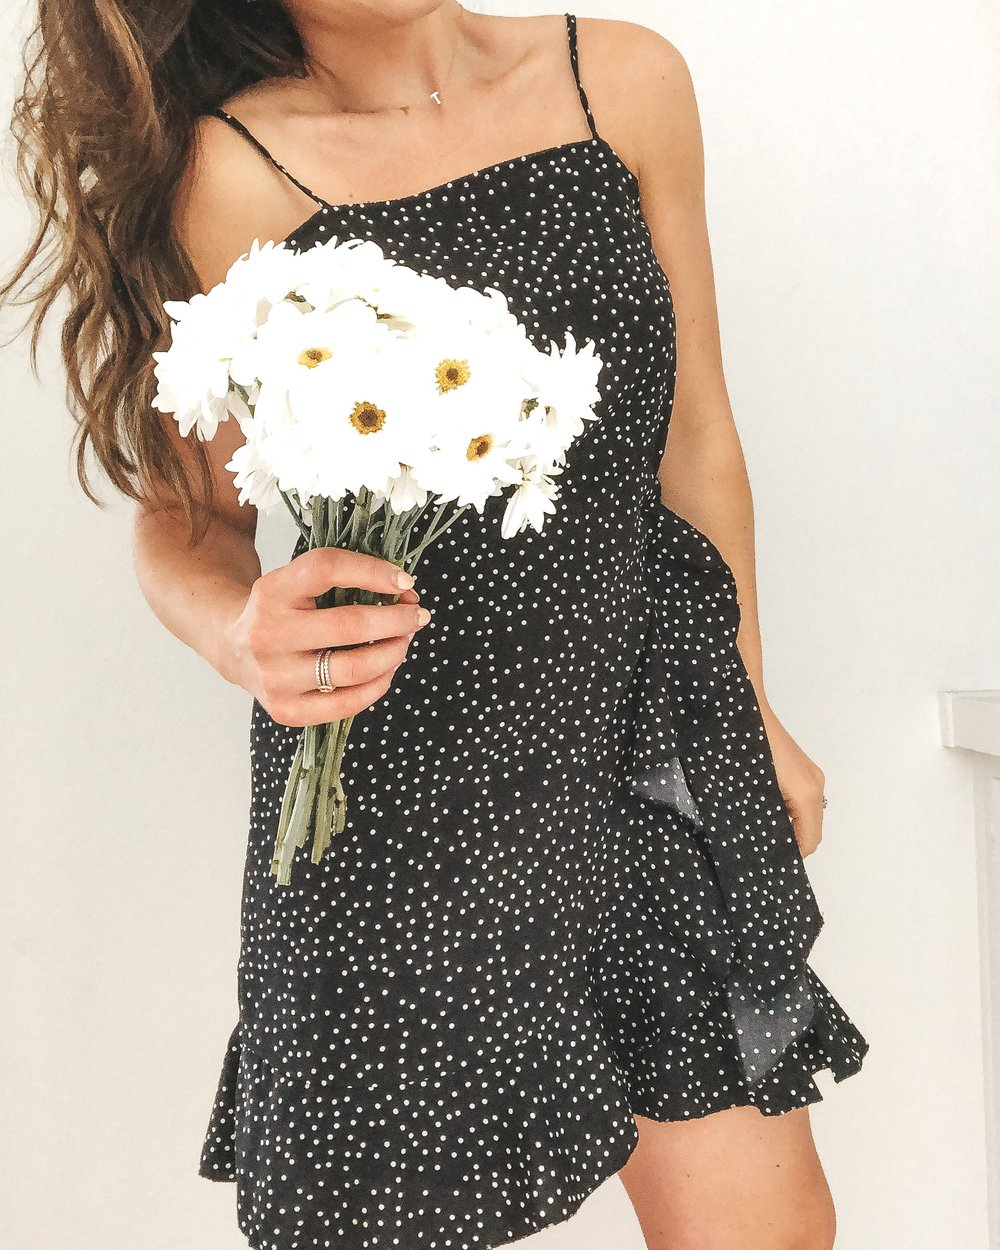 Amazon fashion finds.  Affordable fashion on Amazon.  Black and white polka dot dress for Easter.